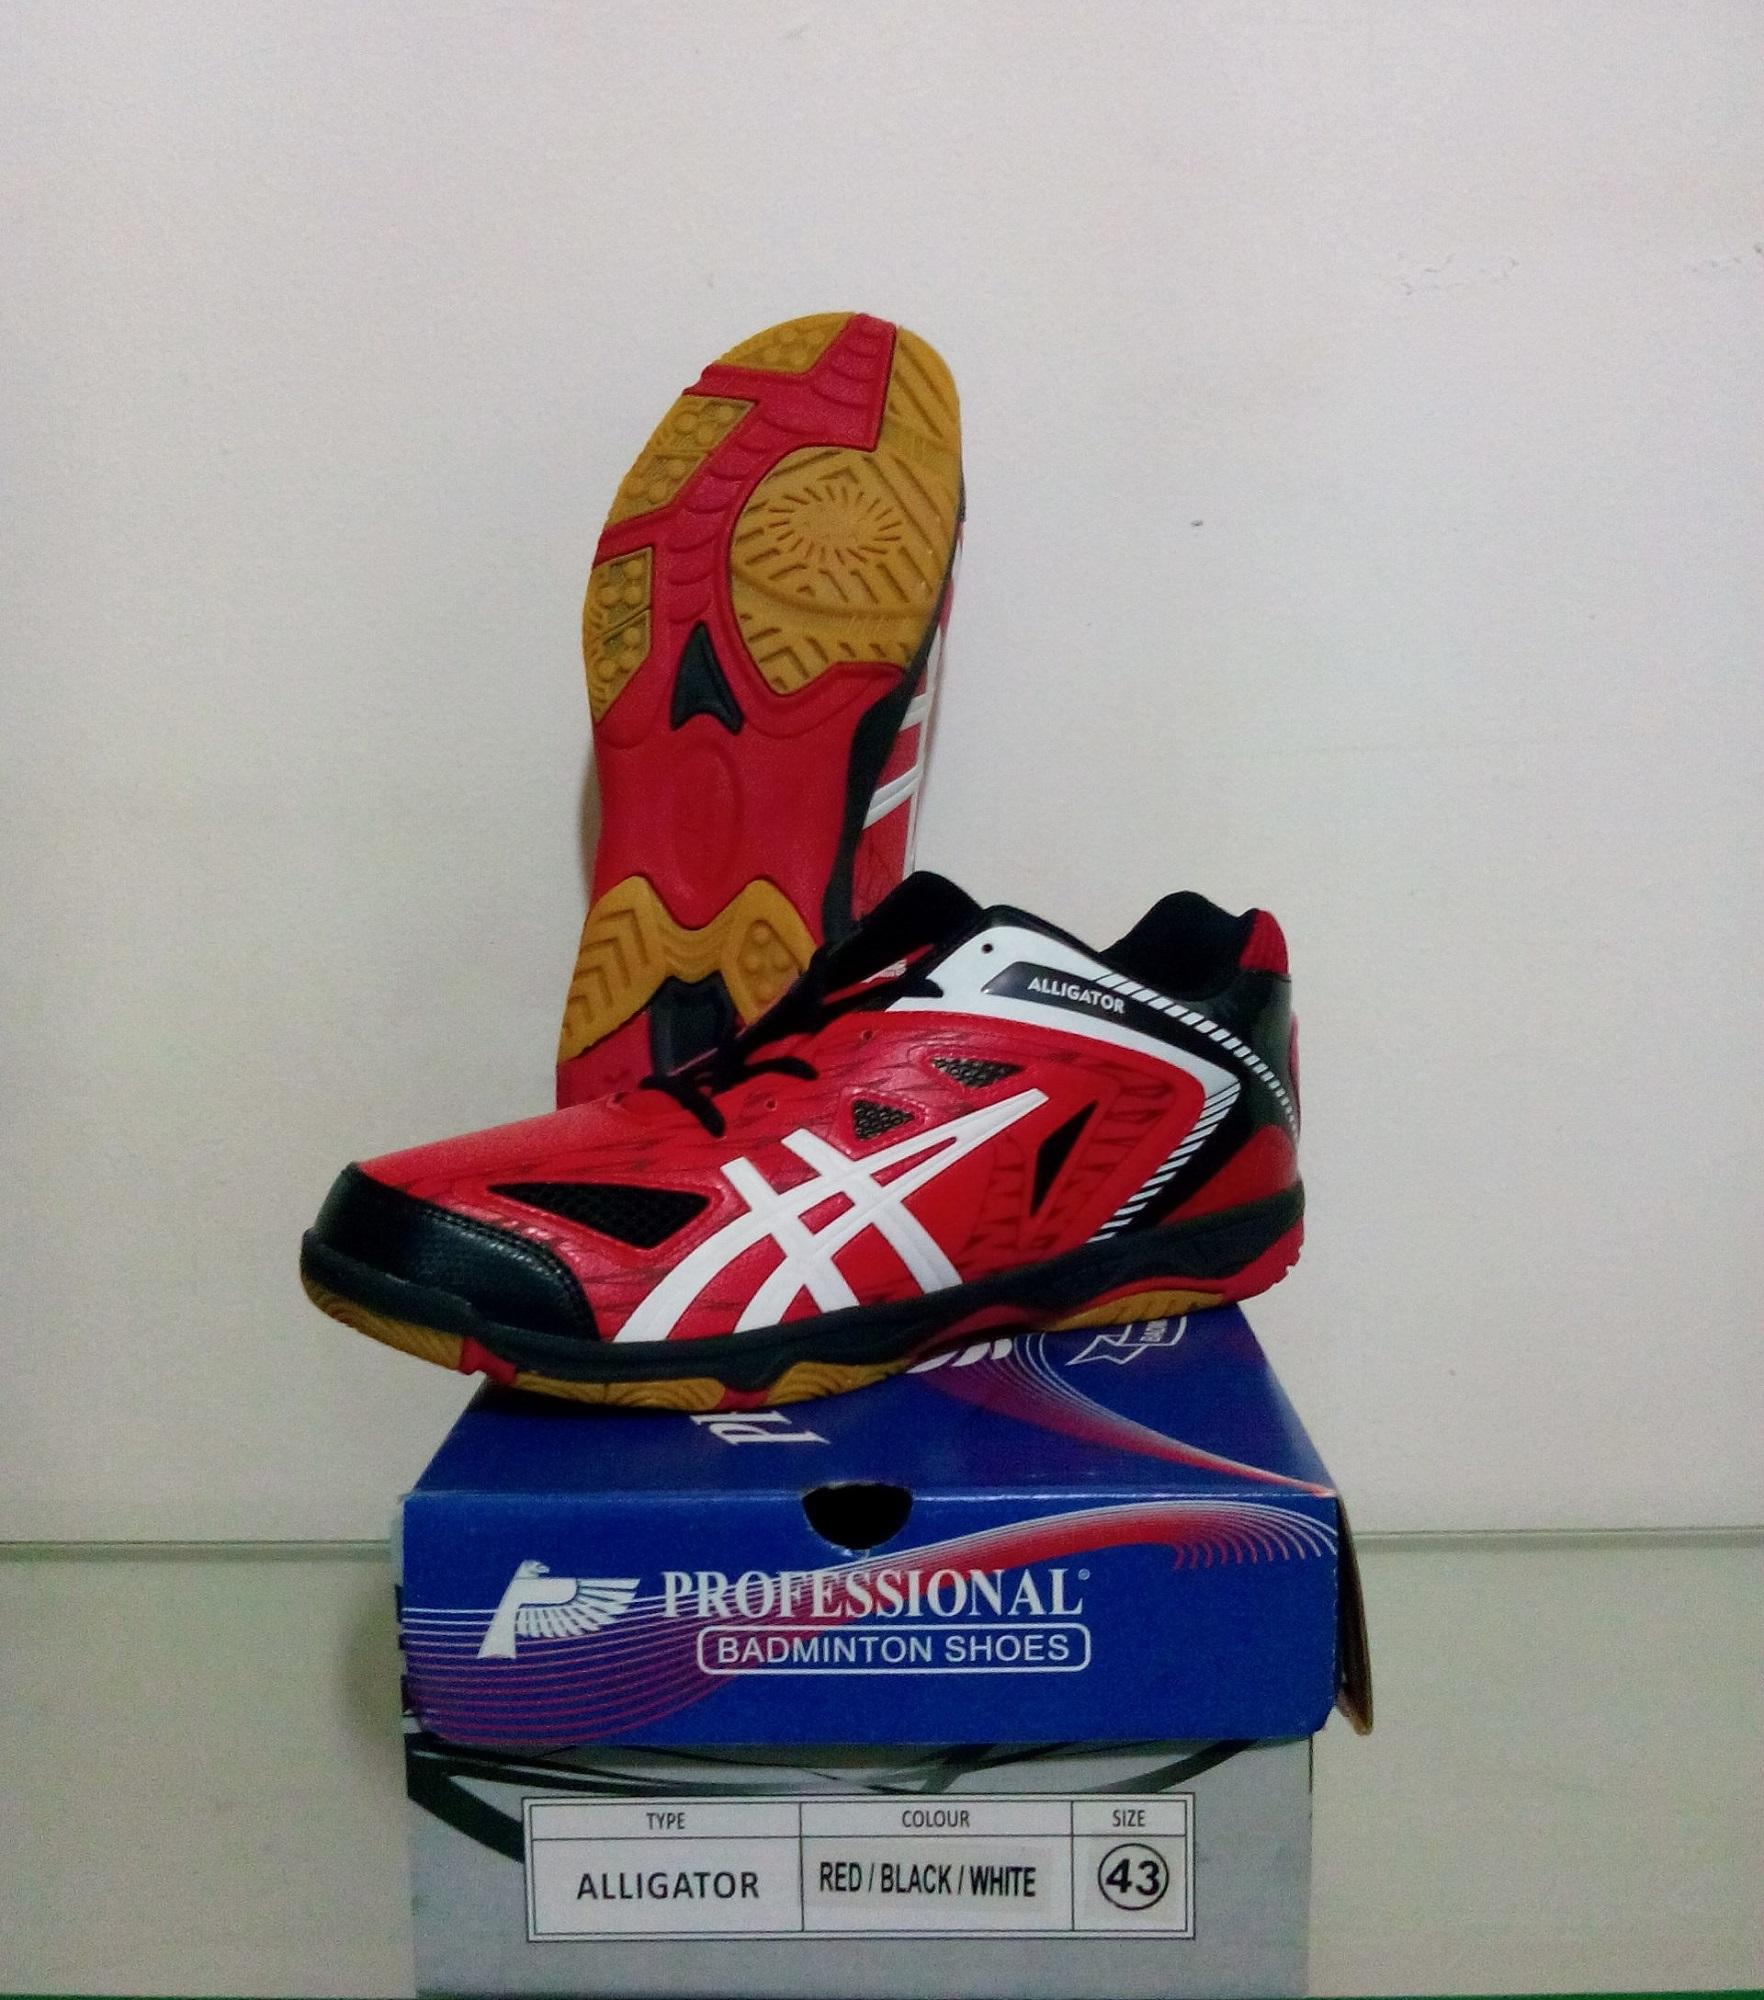 SEPATU BADMINTON PROFESSIONAL ALLIGATOR - RED BLACK WHITE e5e247cadc